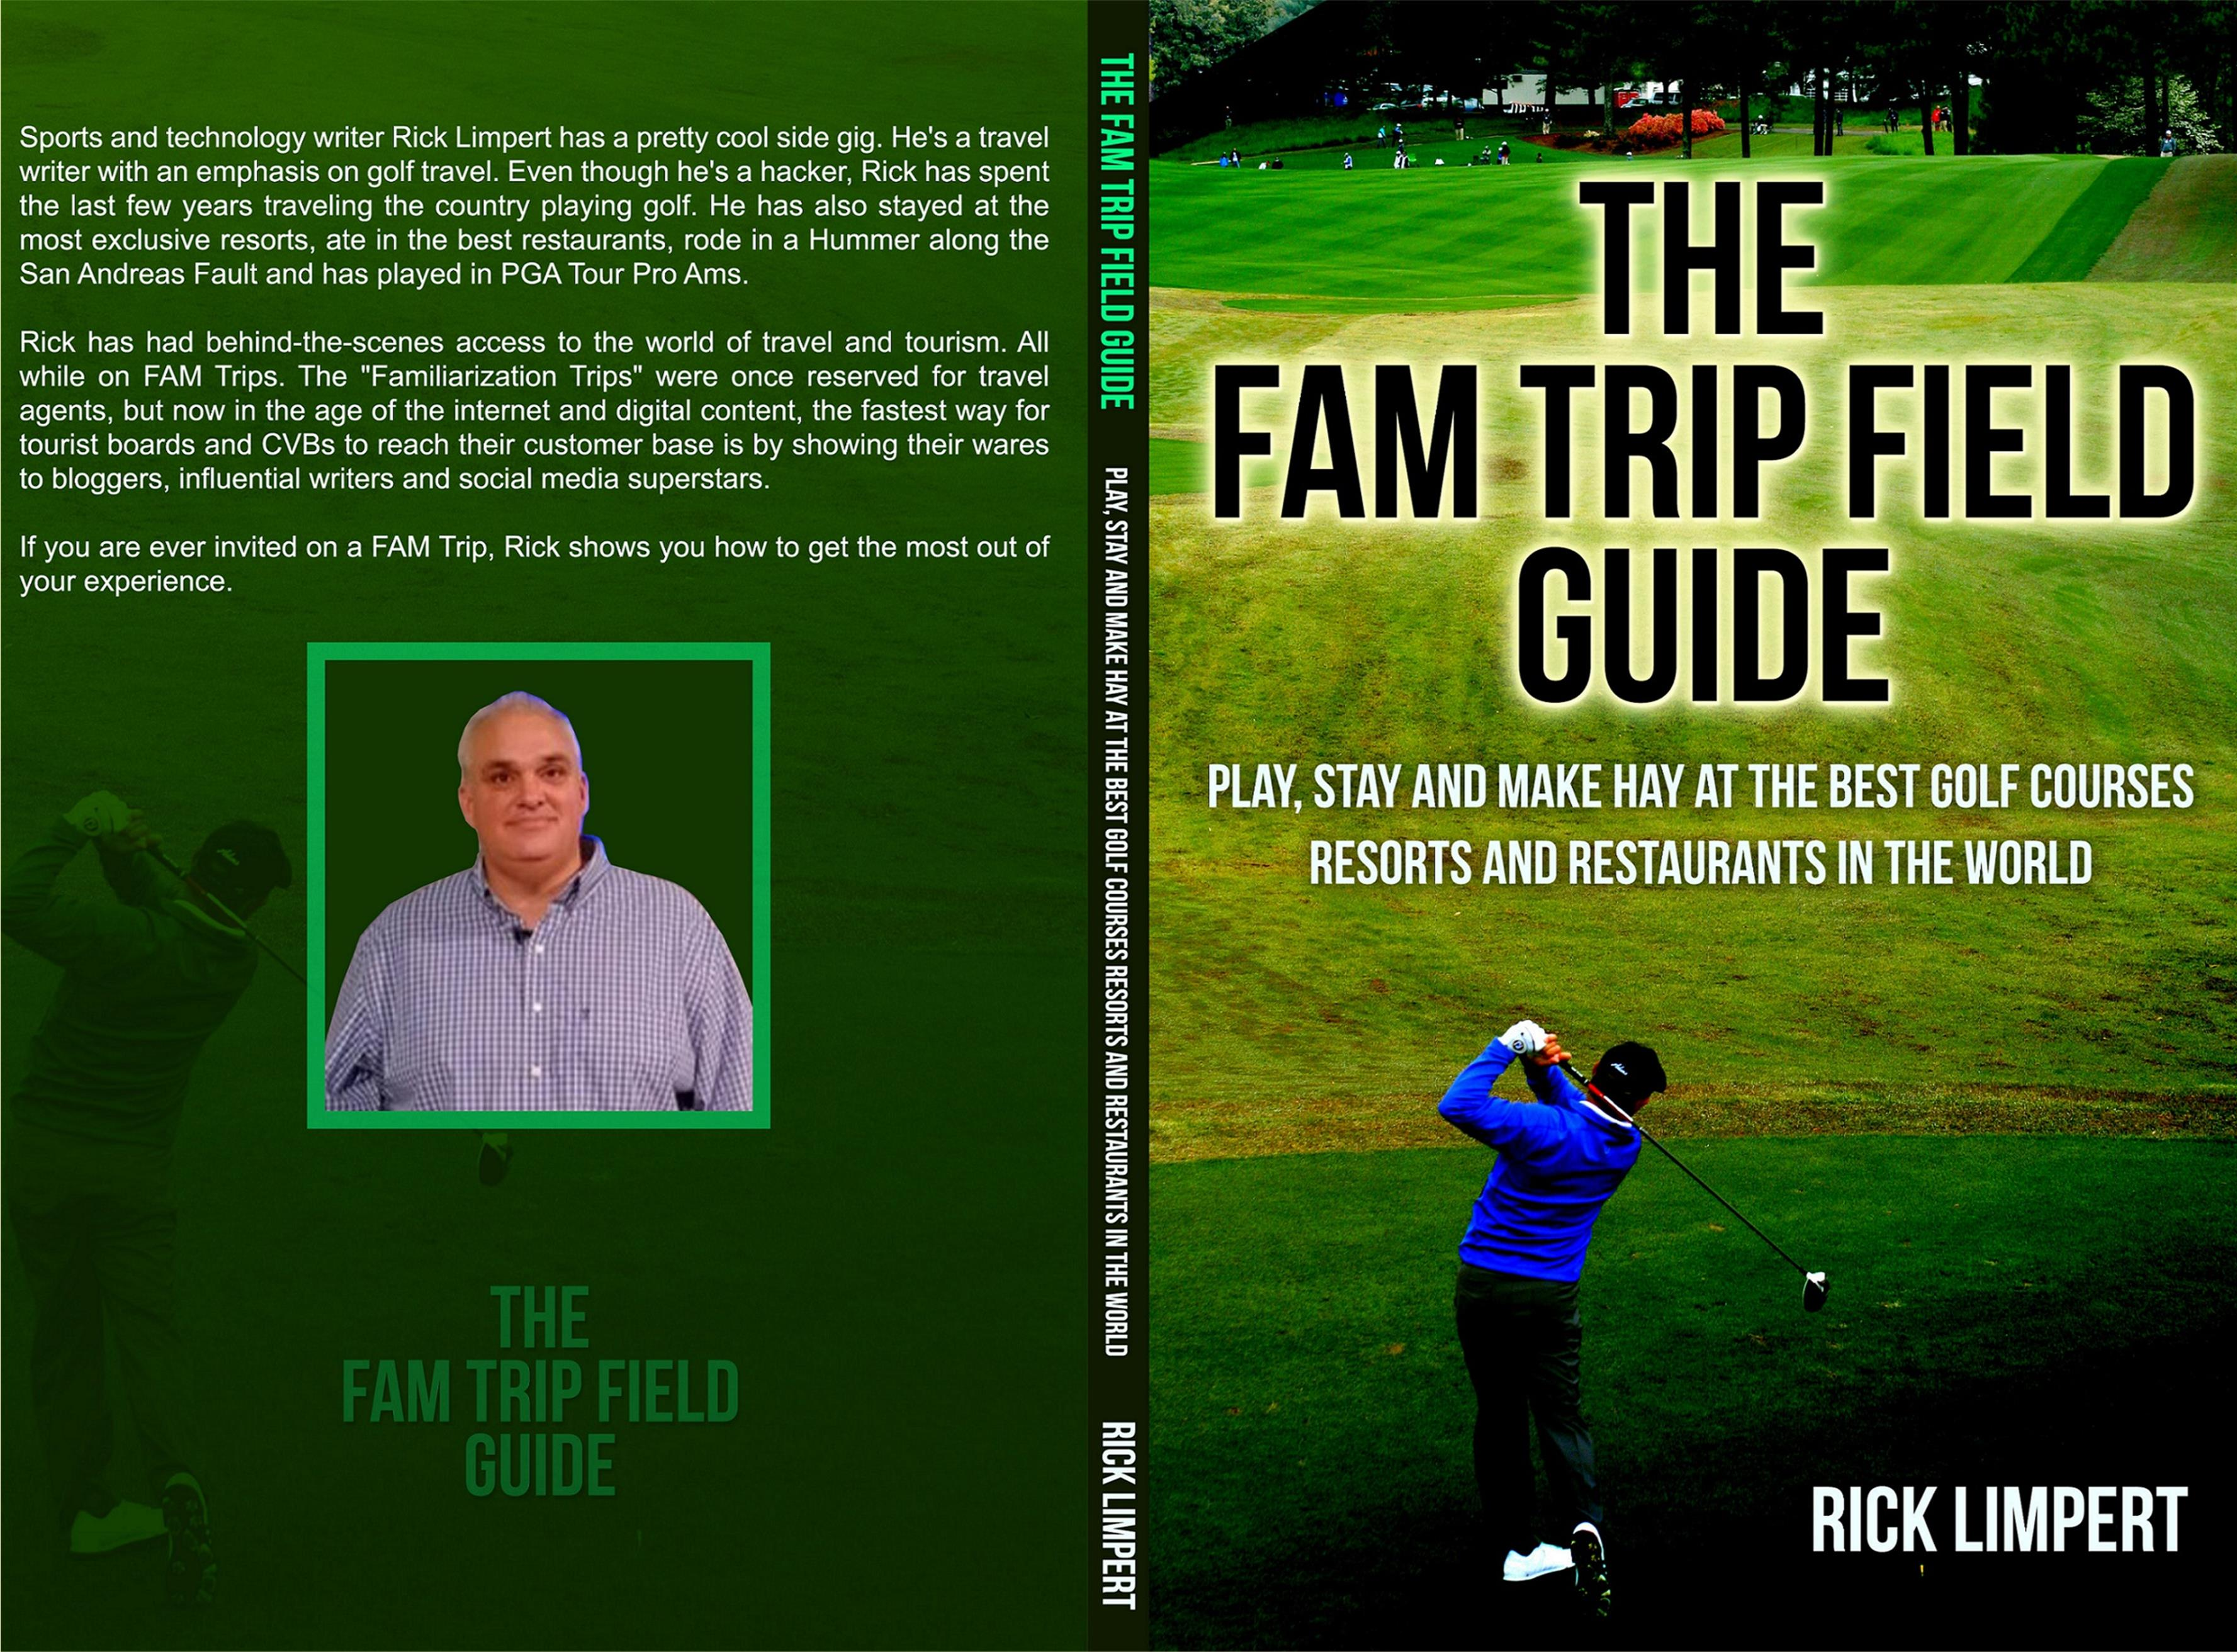 The Fam Trip Field Guide cover image